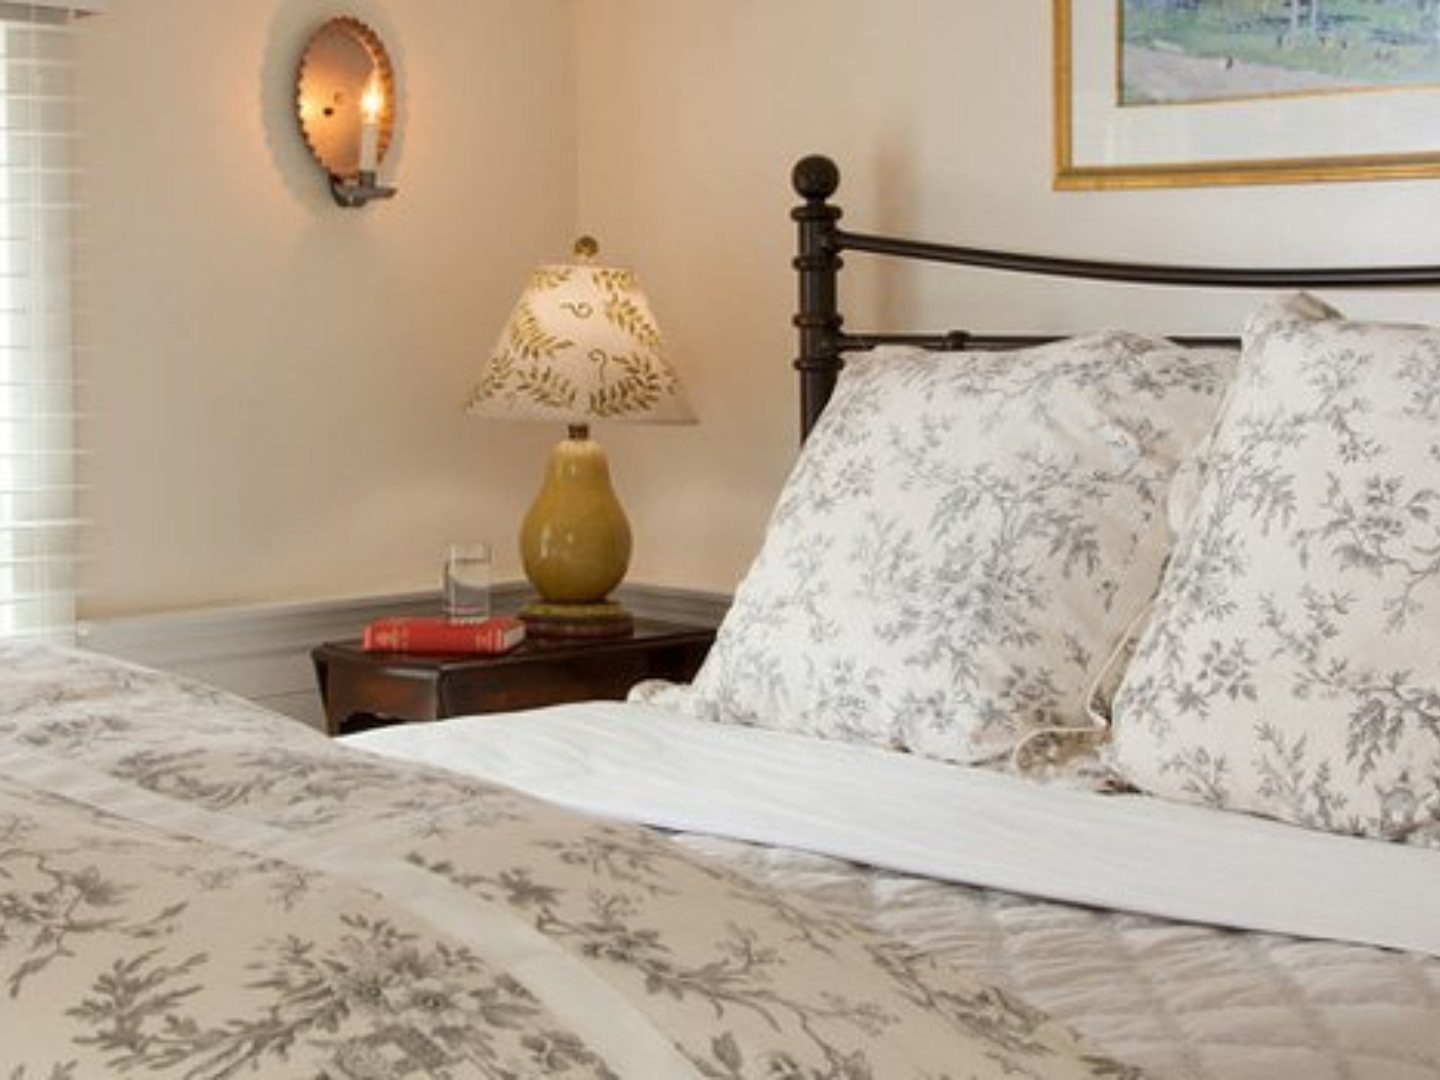 A bedroom with a bed in a room at The Garden Gables Inn.